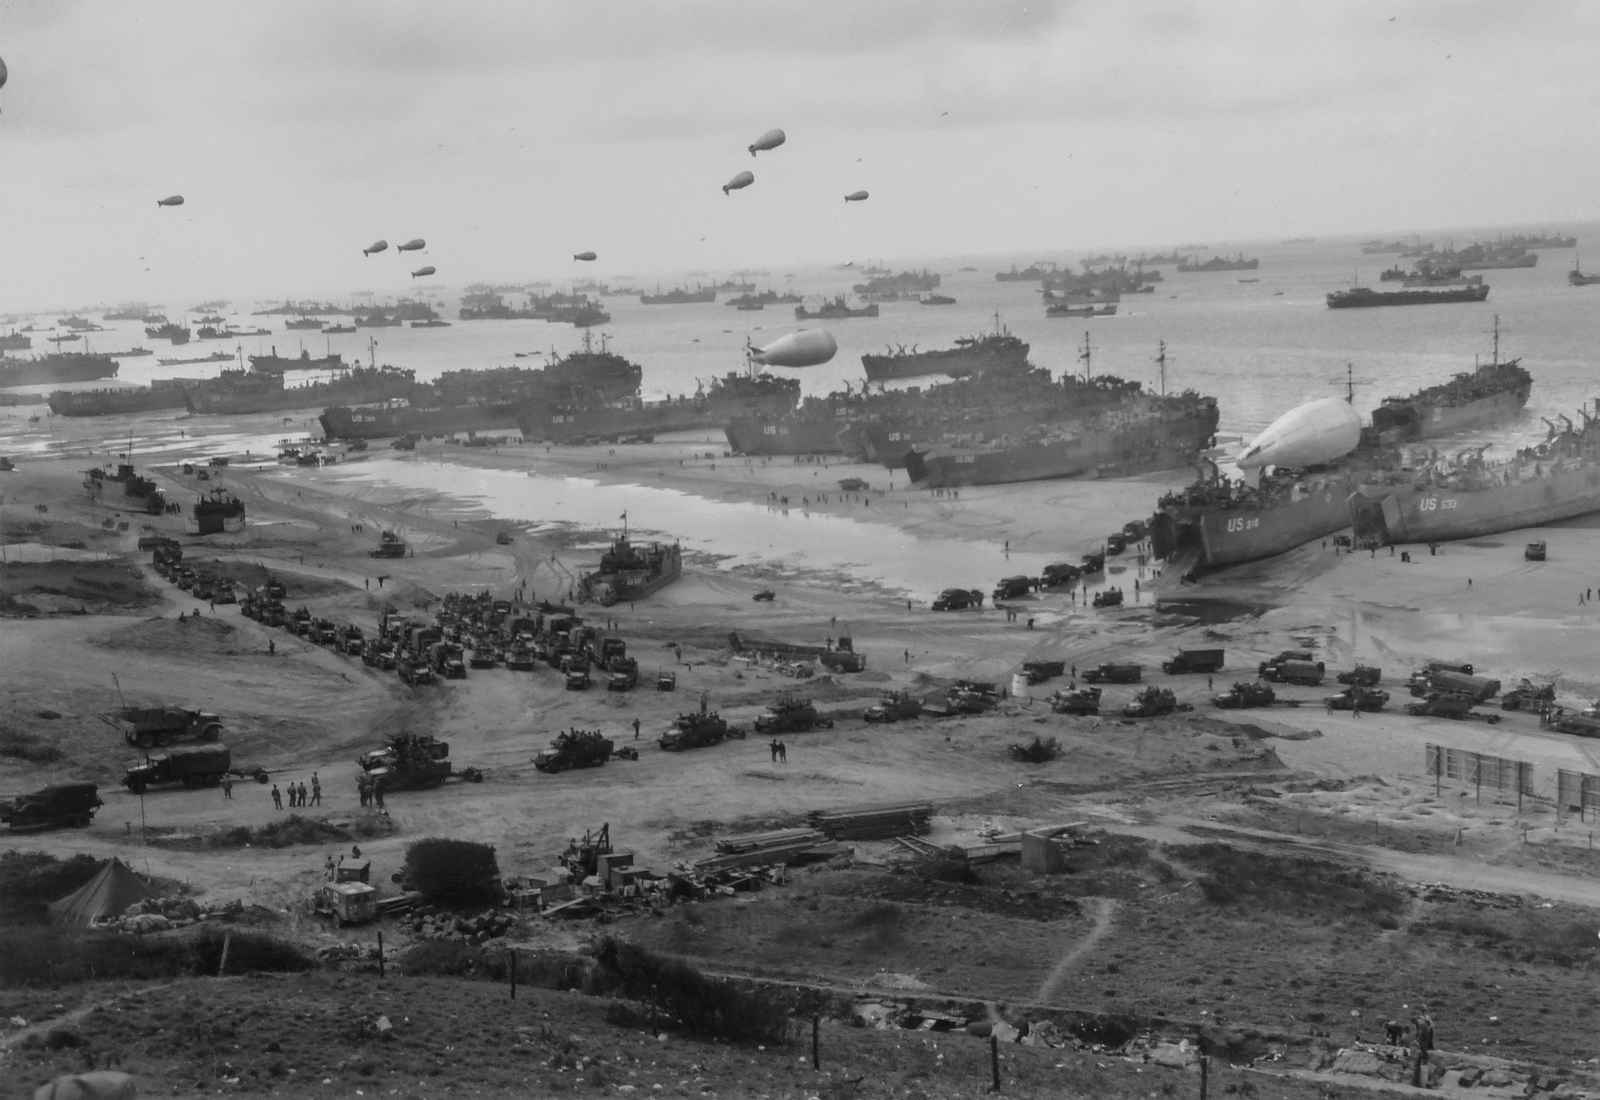 Photograph of the French Invasion Beach Made by a Coast Guard Combat Photographer from a Hillside Cut with the Trenches of the Ousted Nazi Defenders